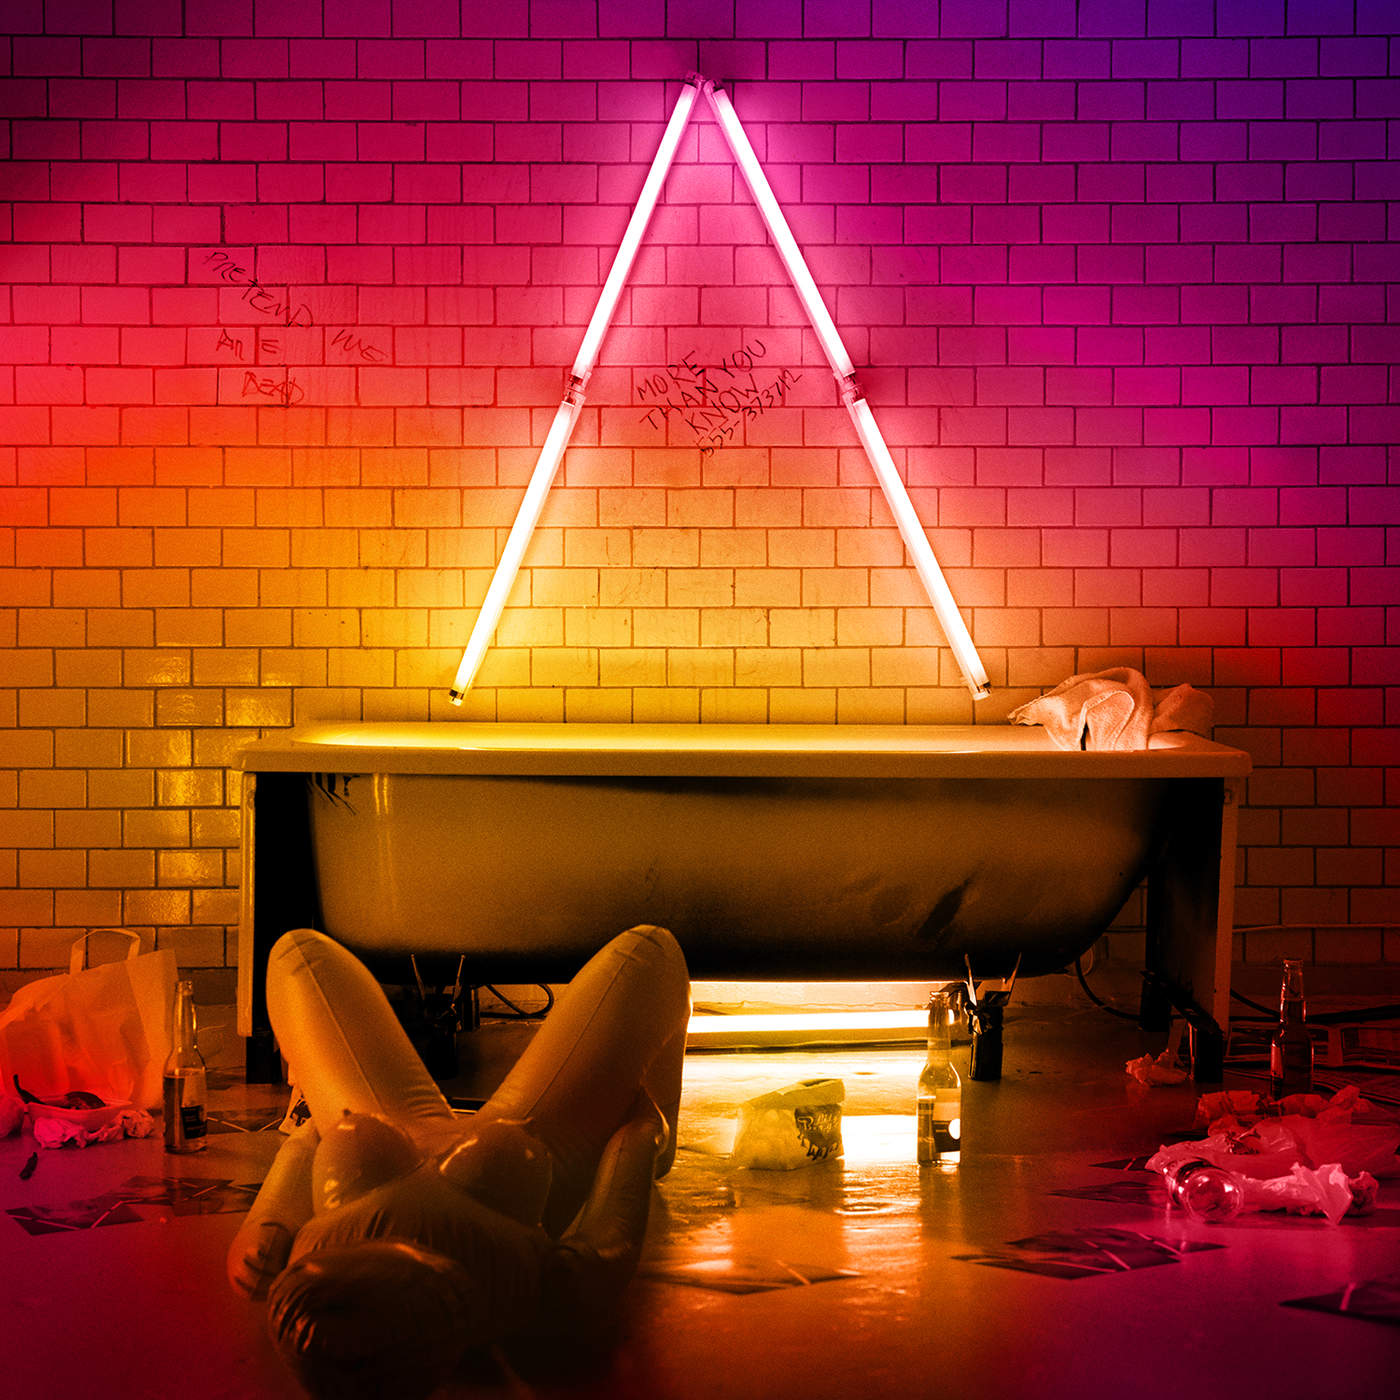 Axwell Λ Ingrosso - Renegade - Single Cover